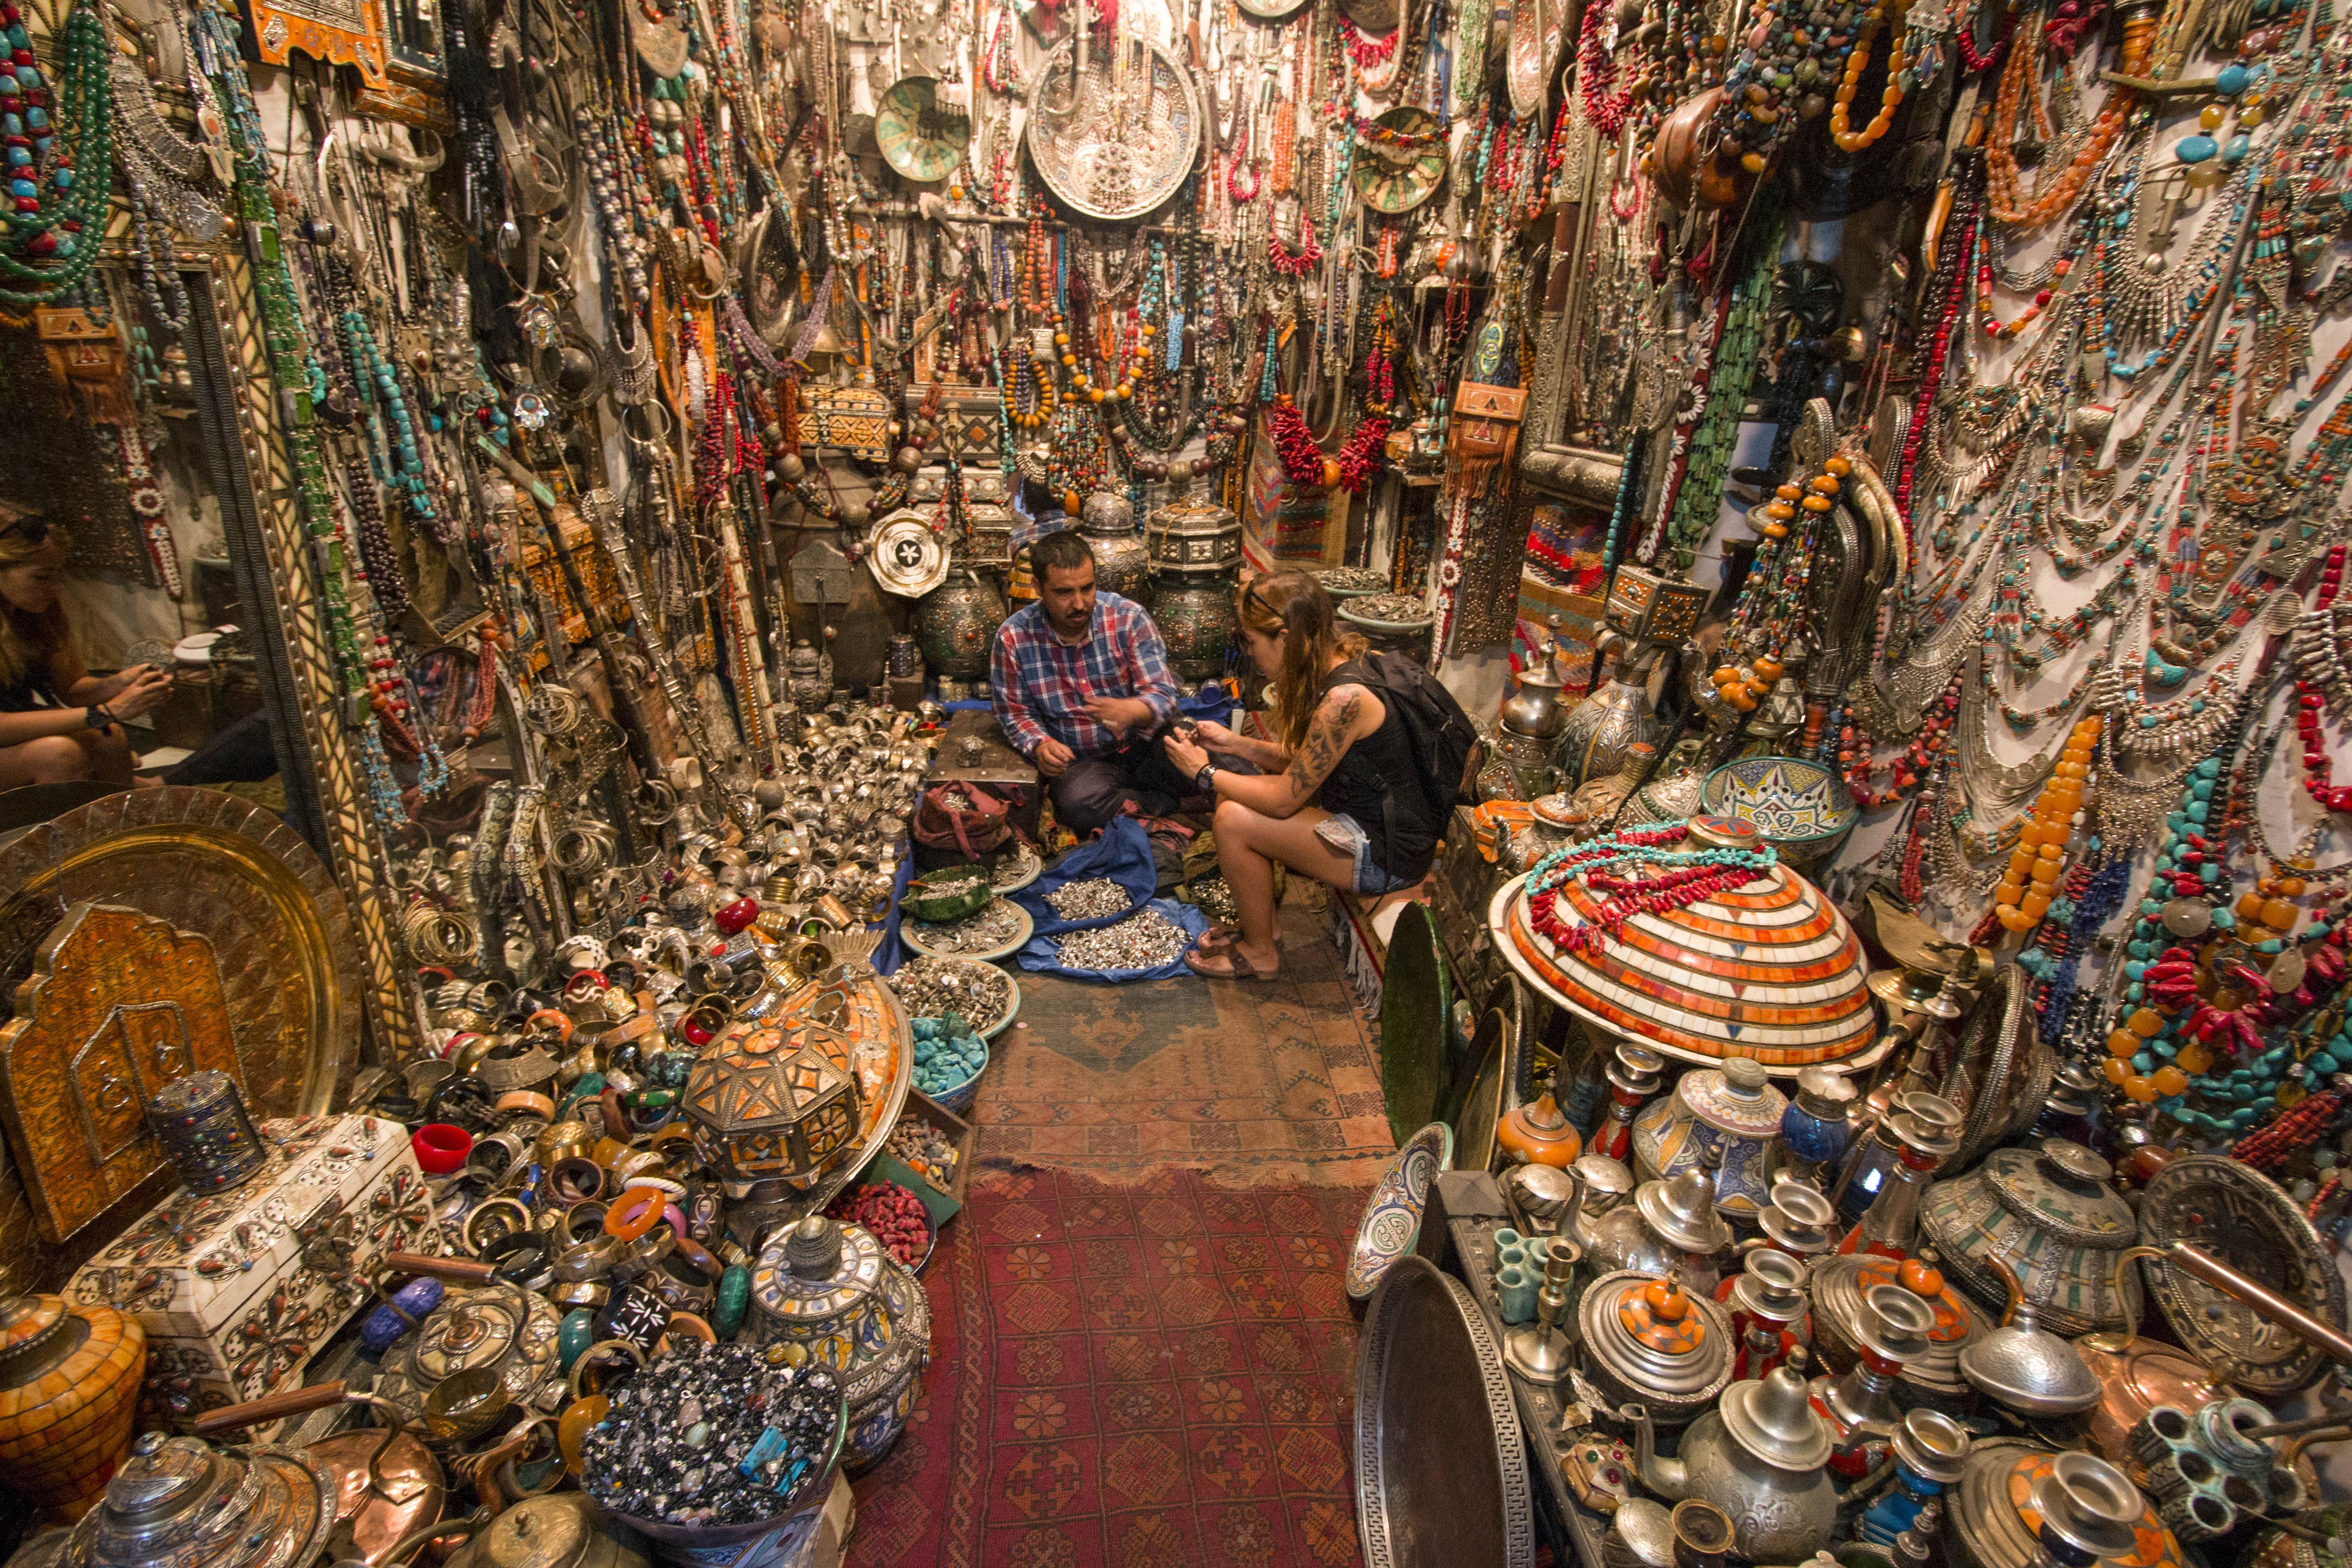 A shop covered in items for sale